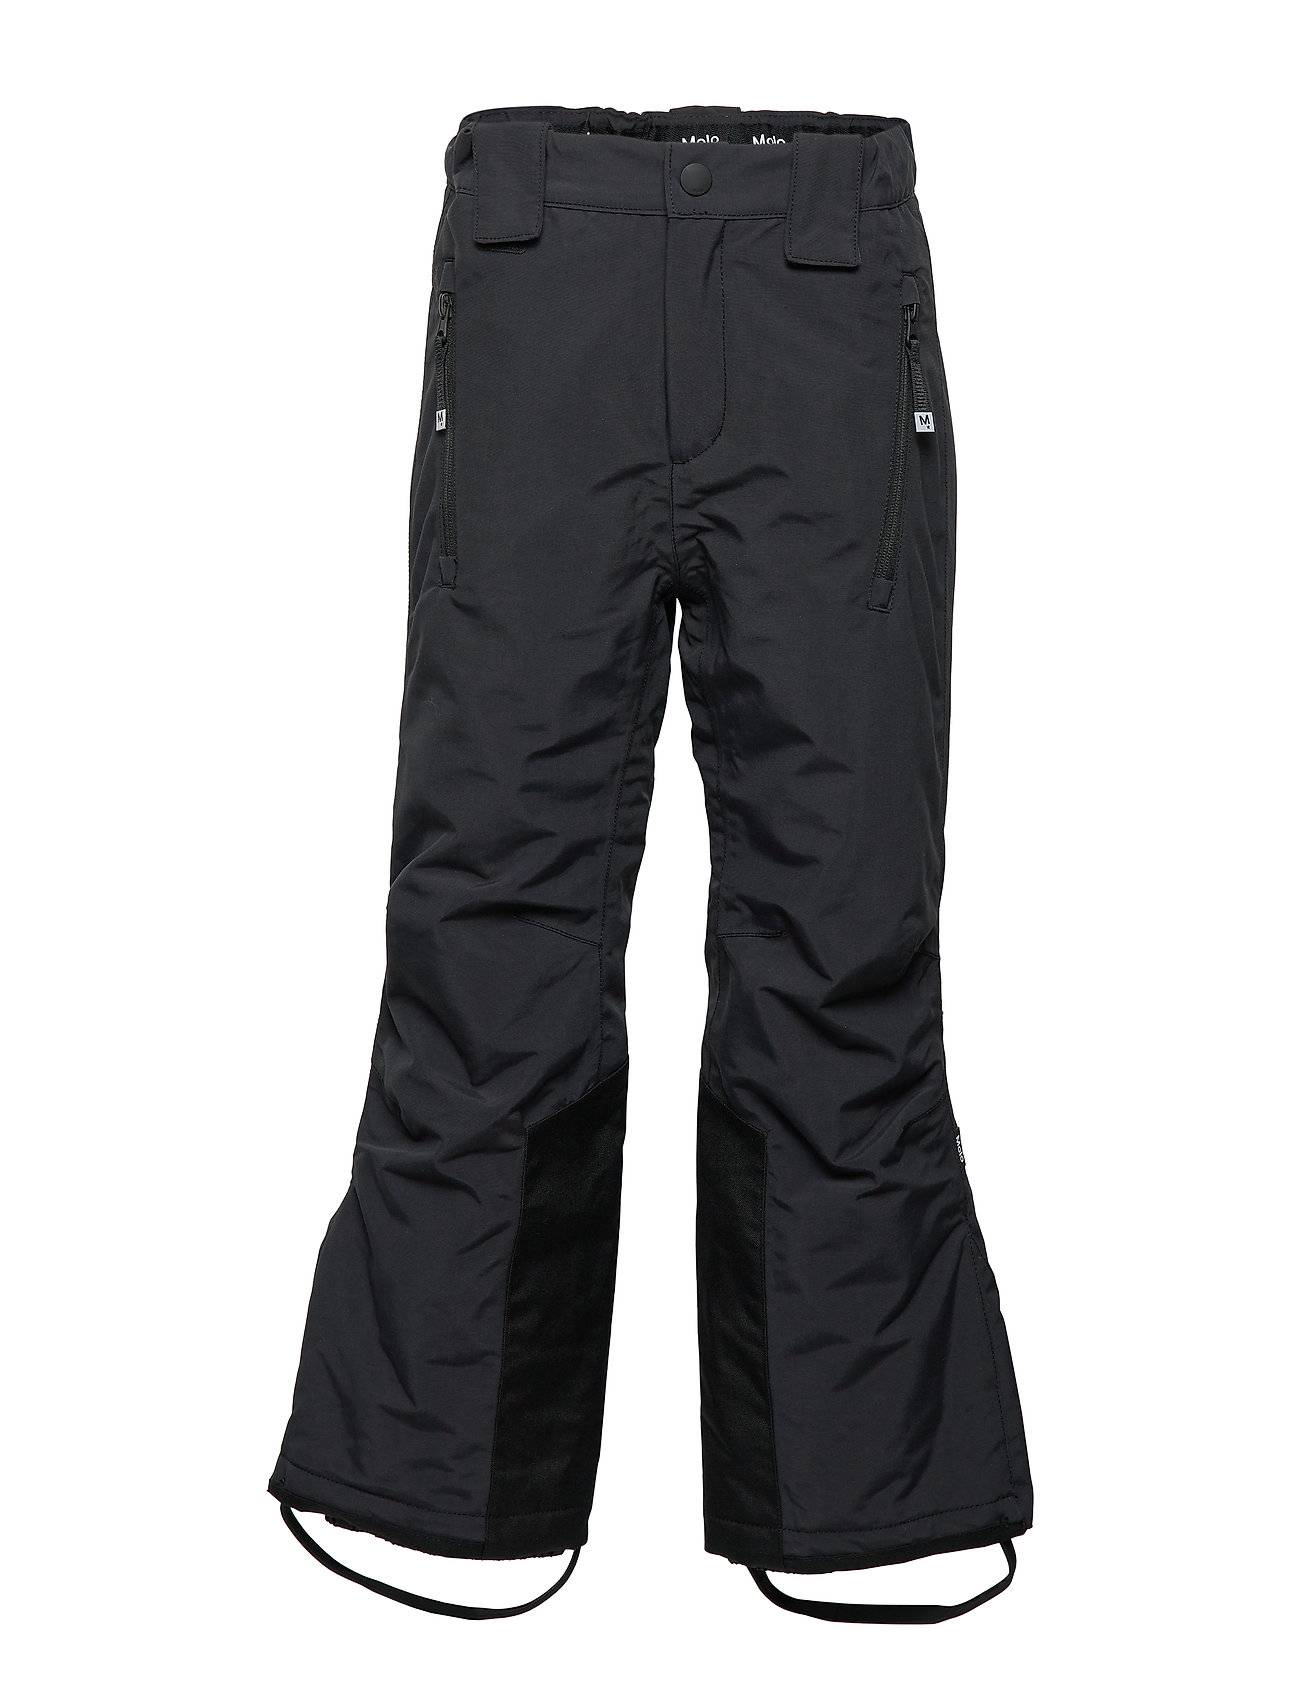 Molo Jump Pro Outerwear Snow/ski Clothing Snow/ski Pants Musta Molo